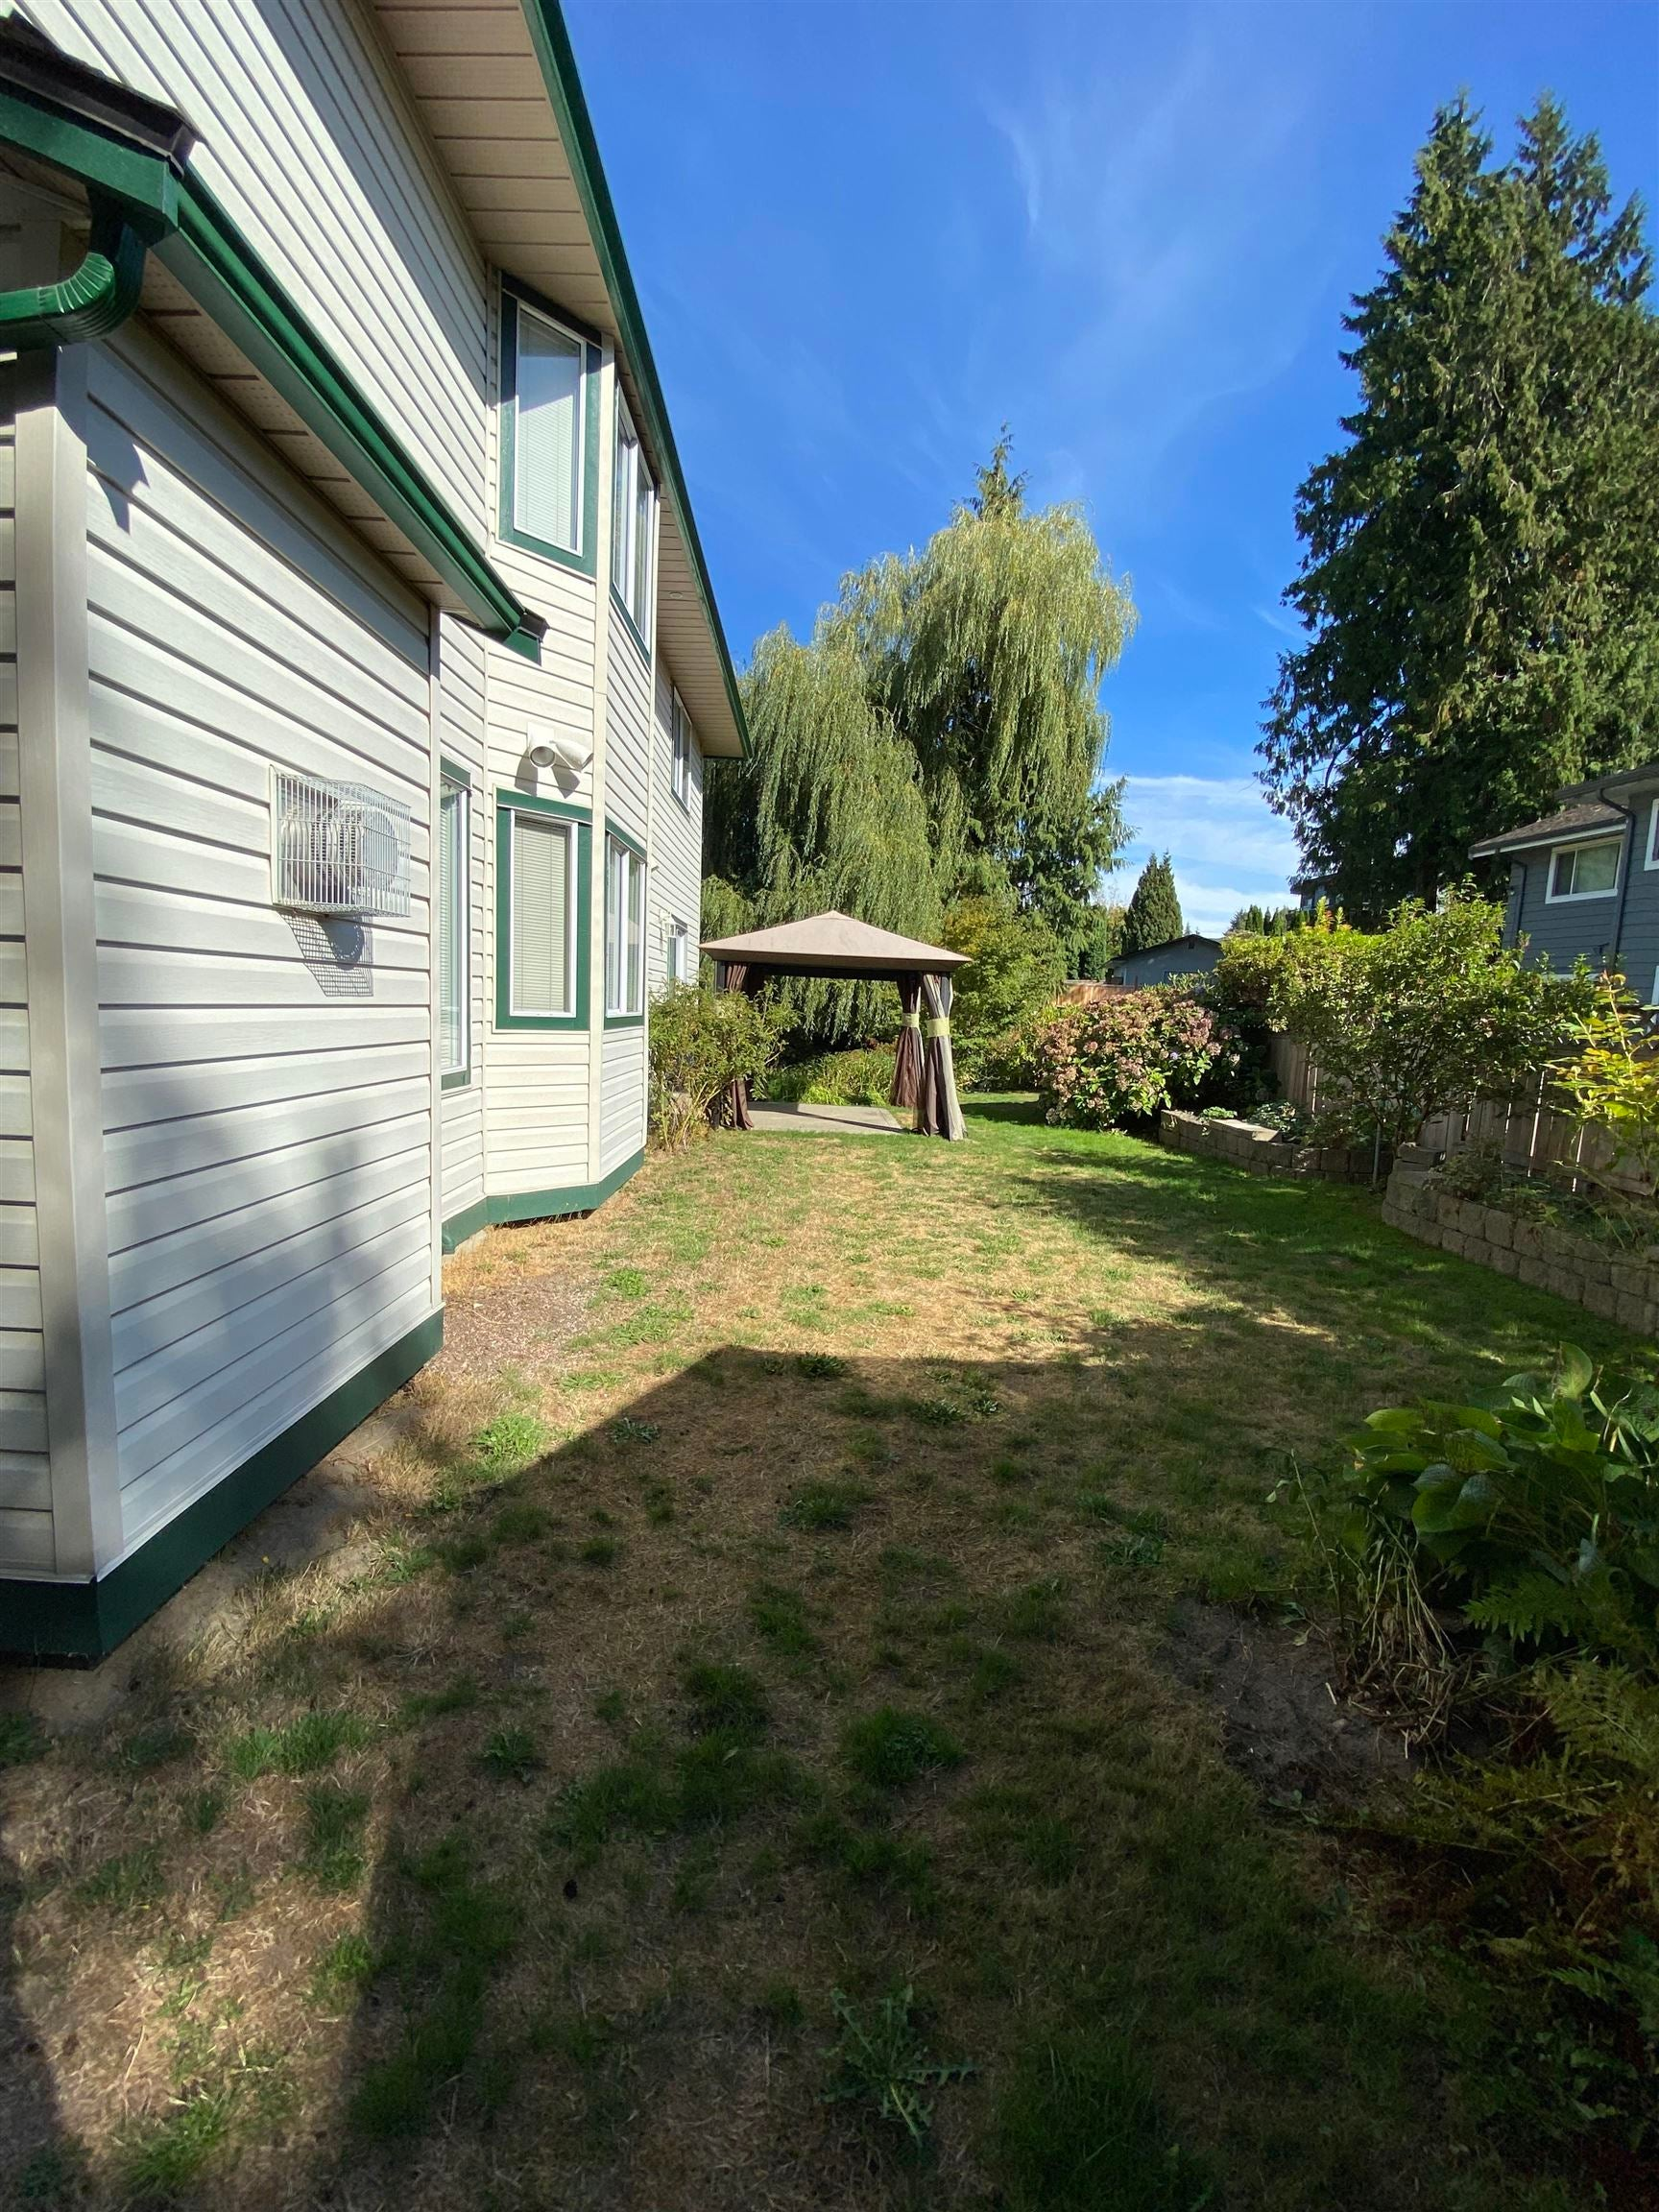 19950 48A AVENUE - Langley City House/Single Family for sale, 4 Bedrooms (R2615832) - #21